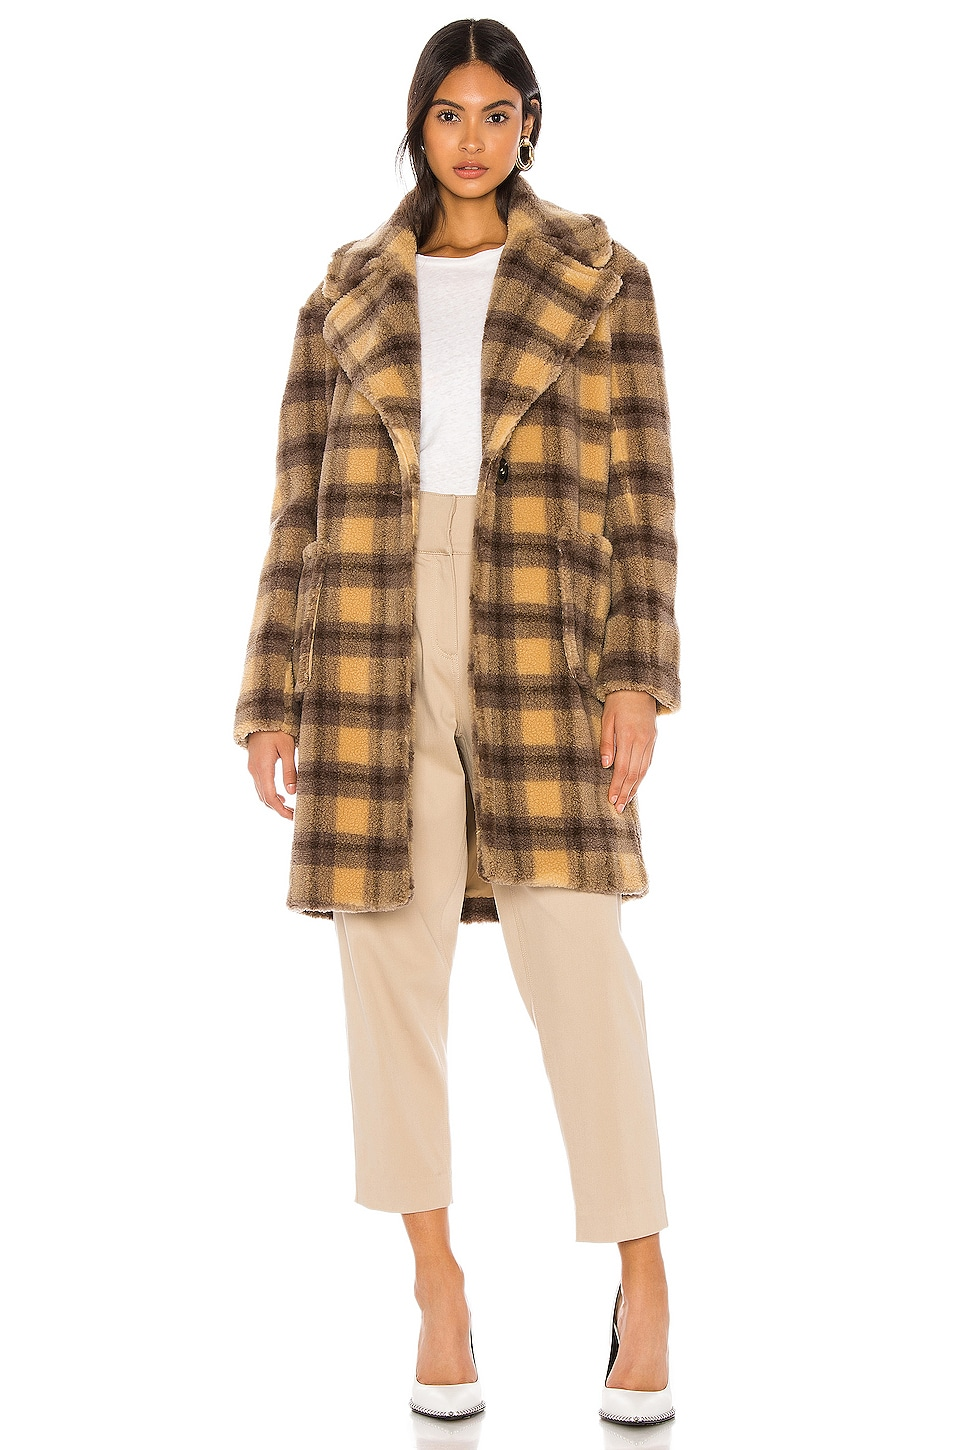 KENDALL + KYLIE Teddy Plaid Coat in Camel